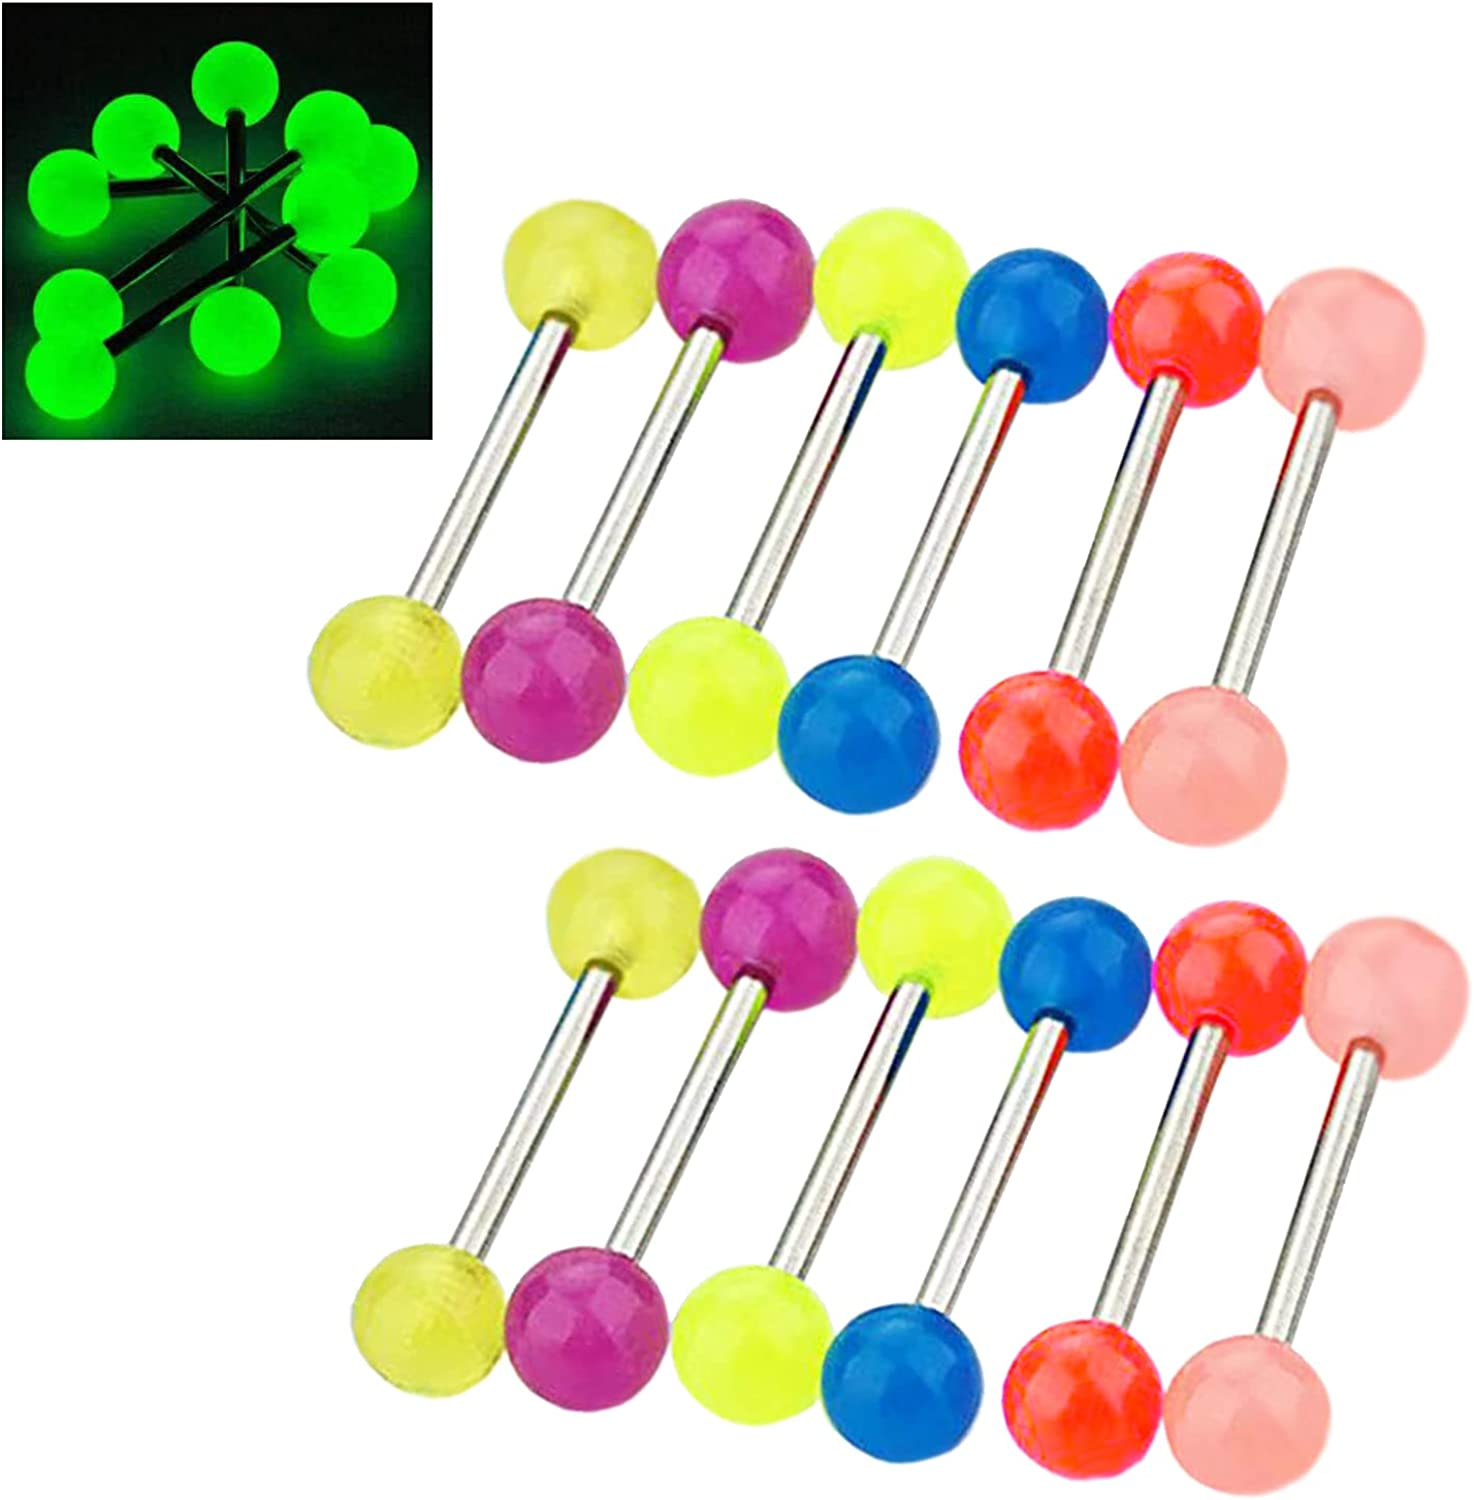 CHARMONLINE Tongue Rings Barbell Nipple Bars 12Pcs Glow in The Dark 14G Bioflex Acrylic or Stainless Steel Piercing Rings Jewelry